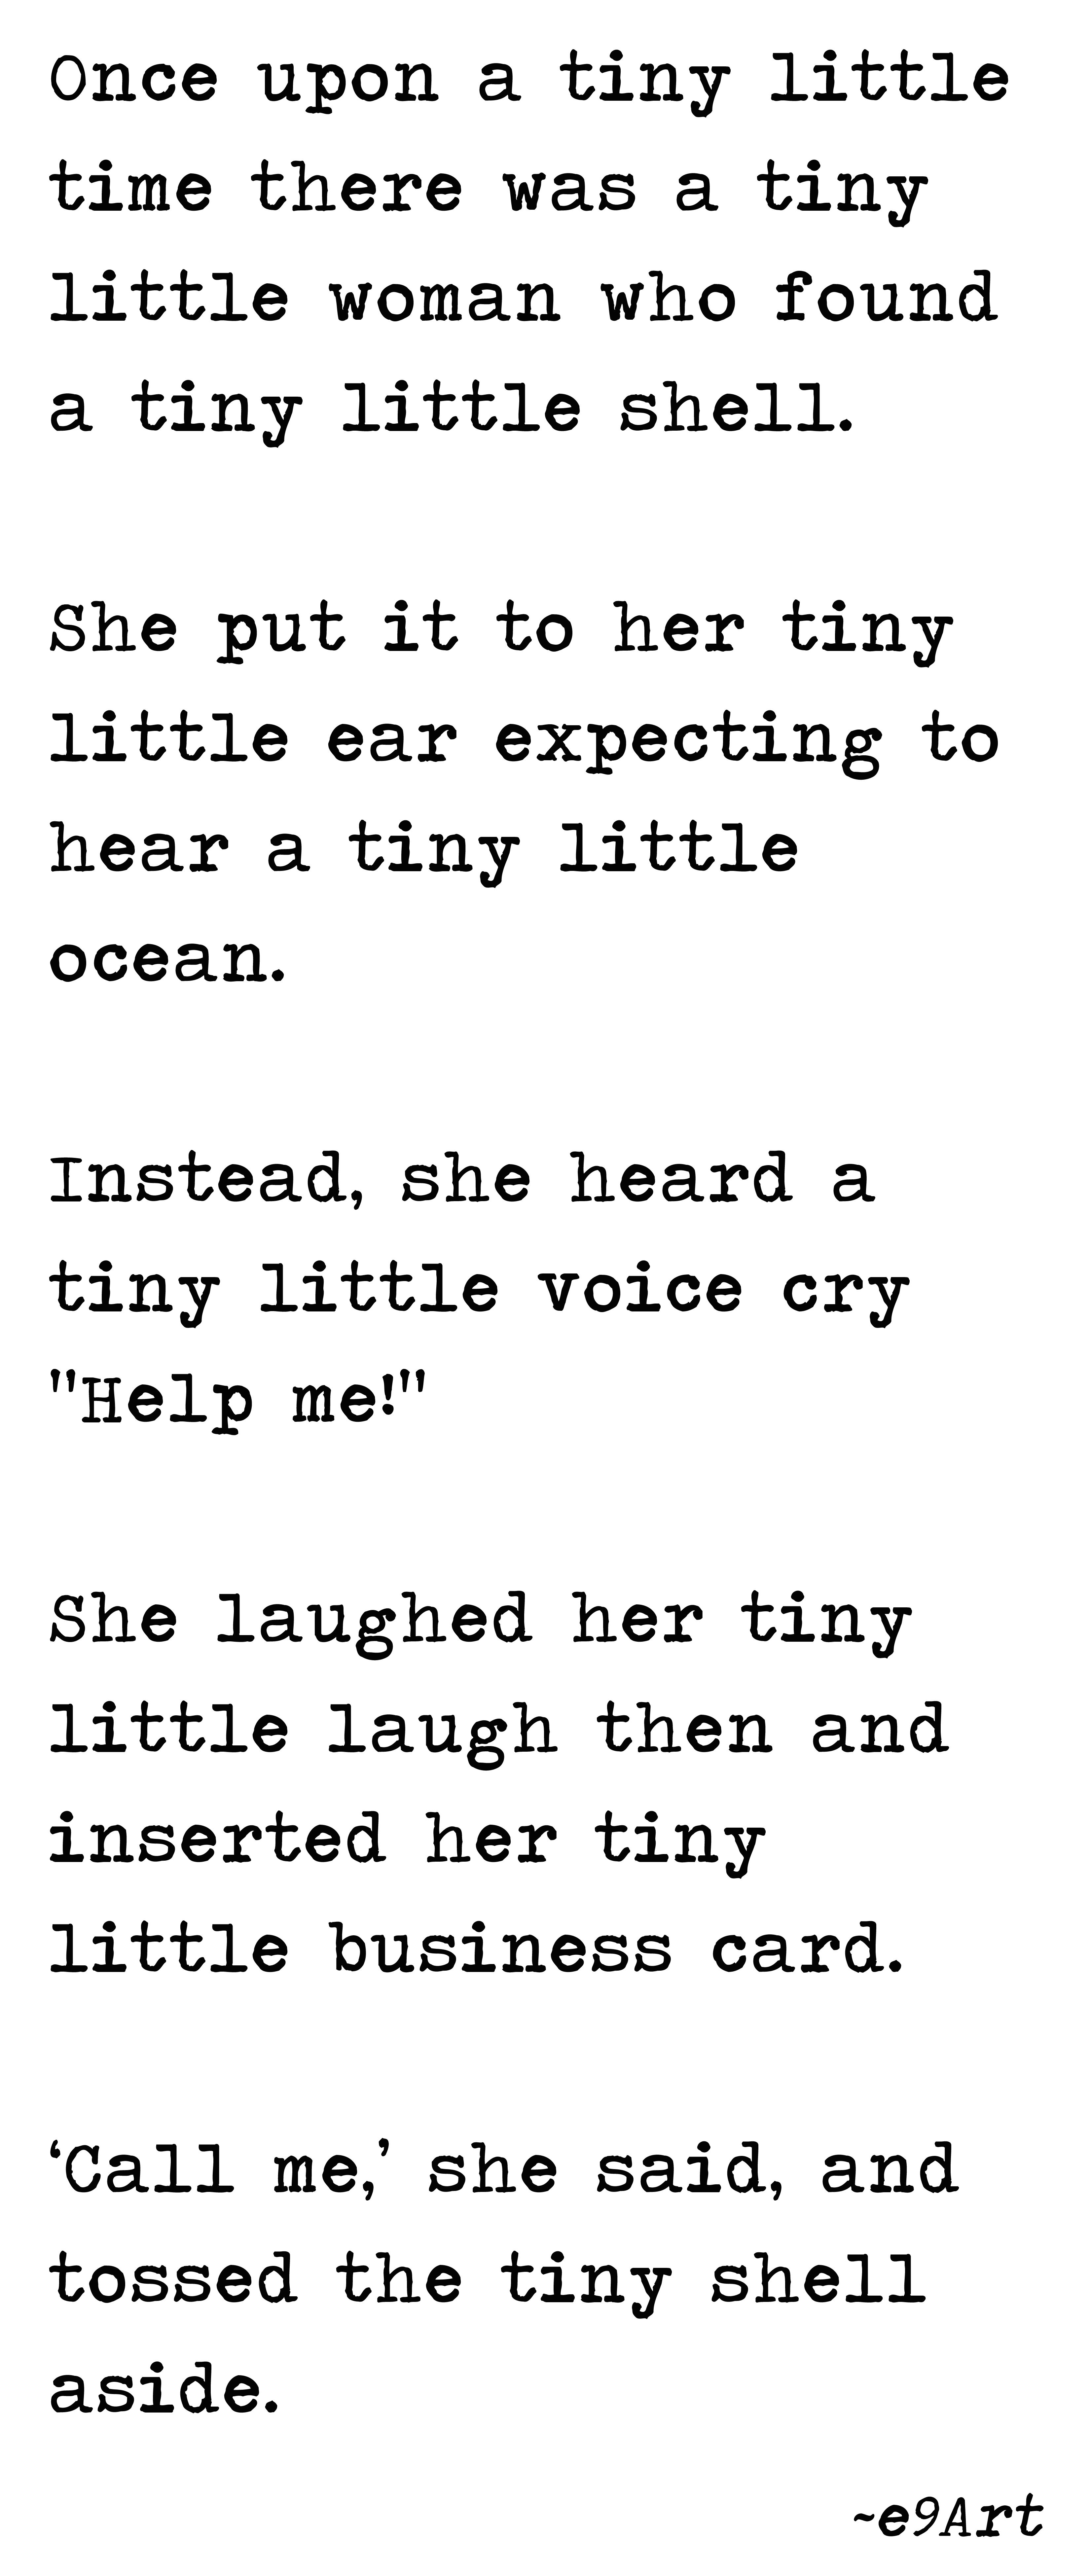 000 A Tiny Little Shell by e9Art (Microfiction, Very Short